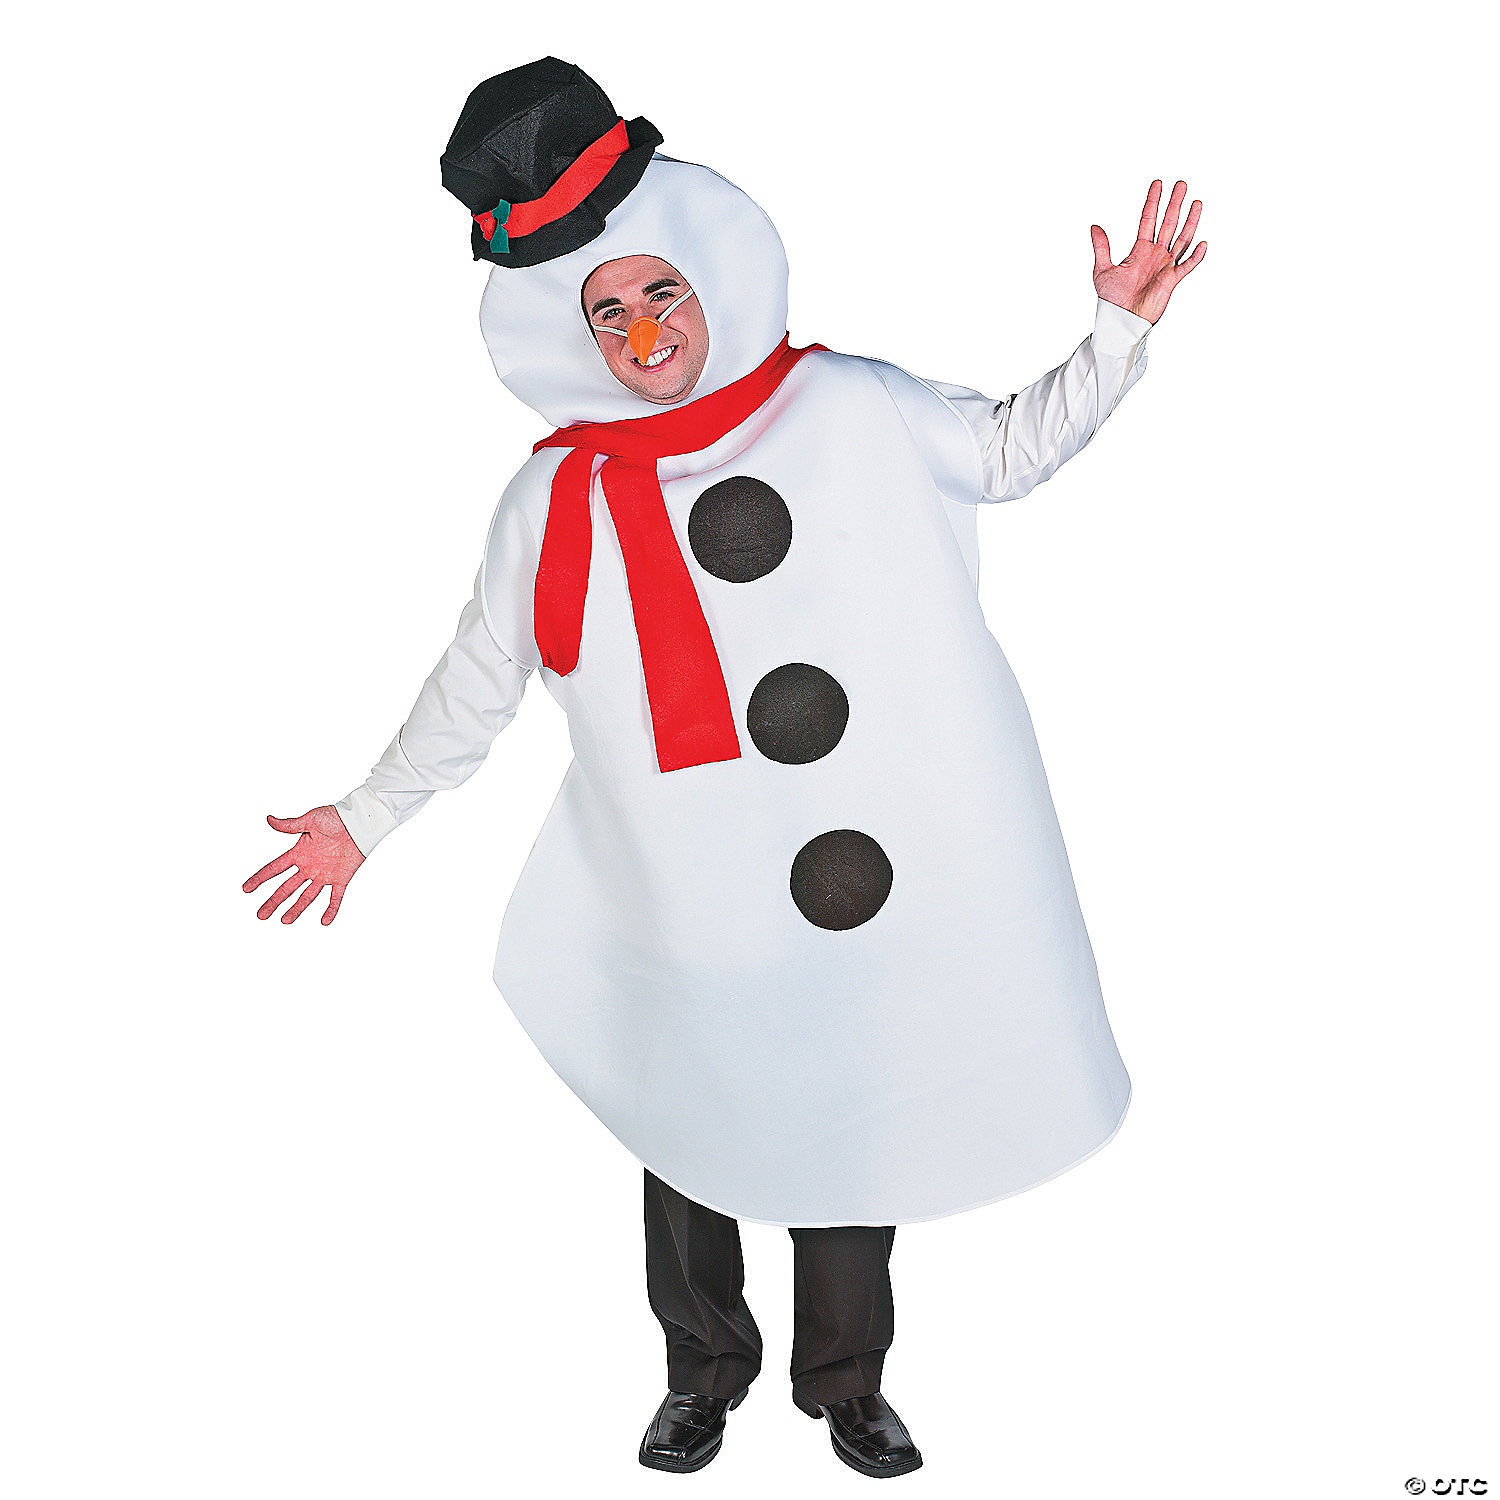 snowman products snowman theme snowman supplies